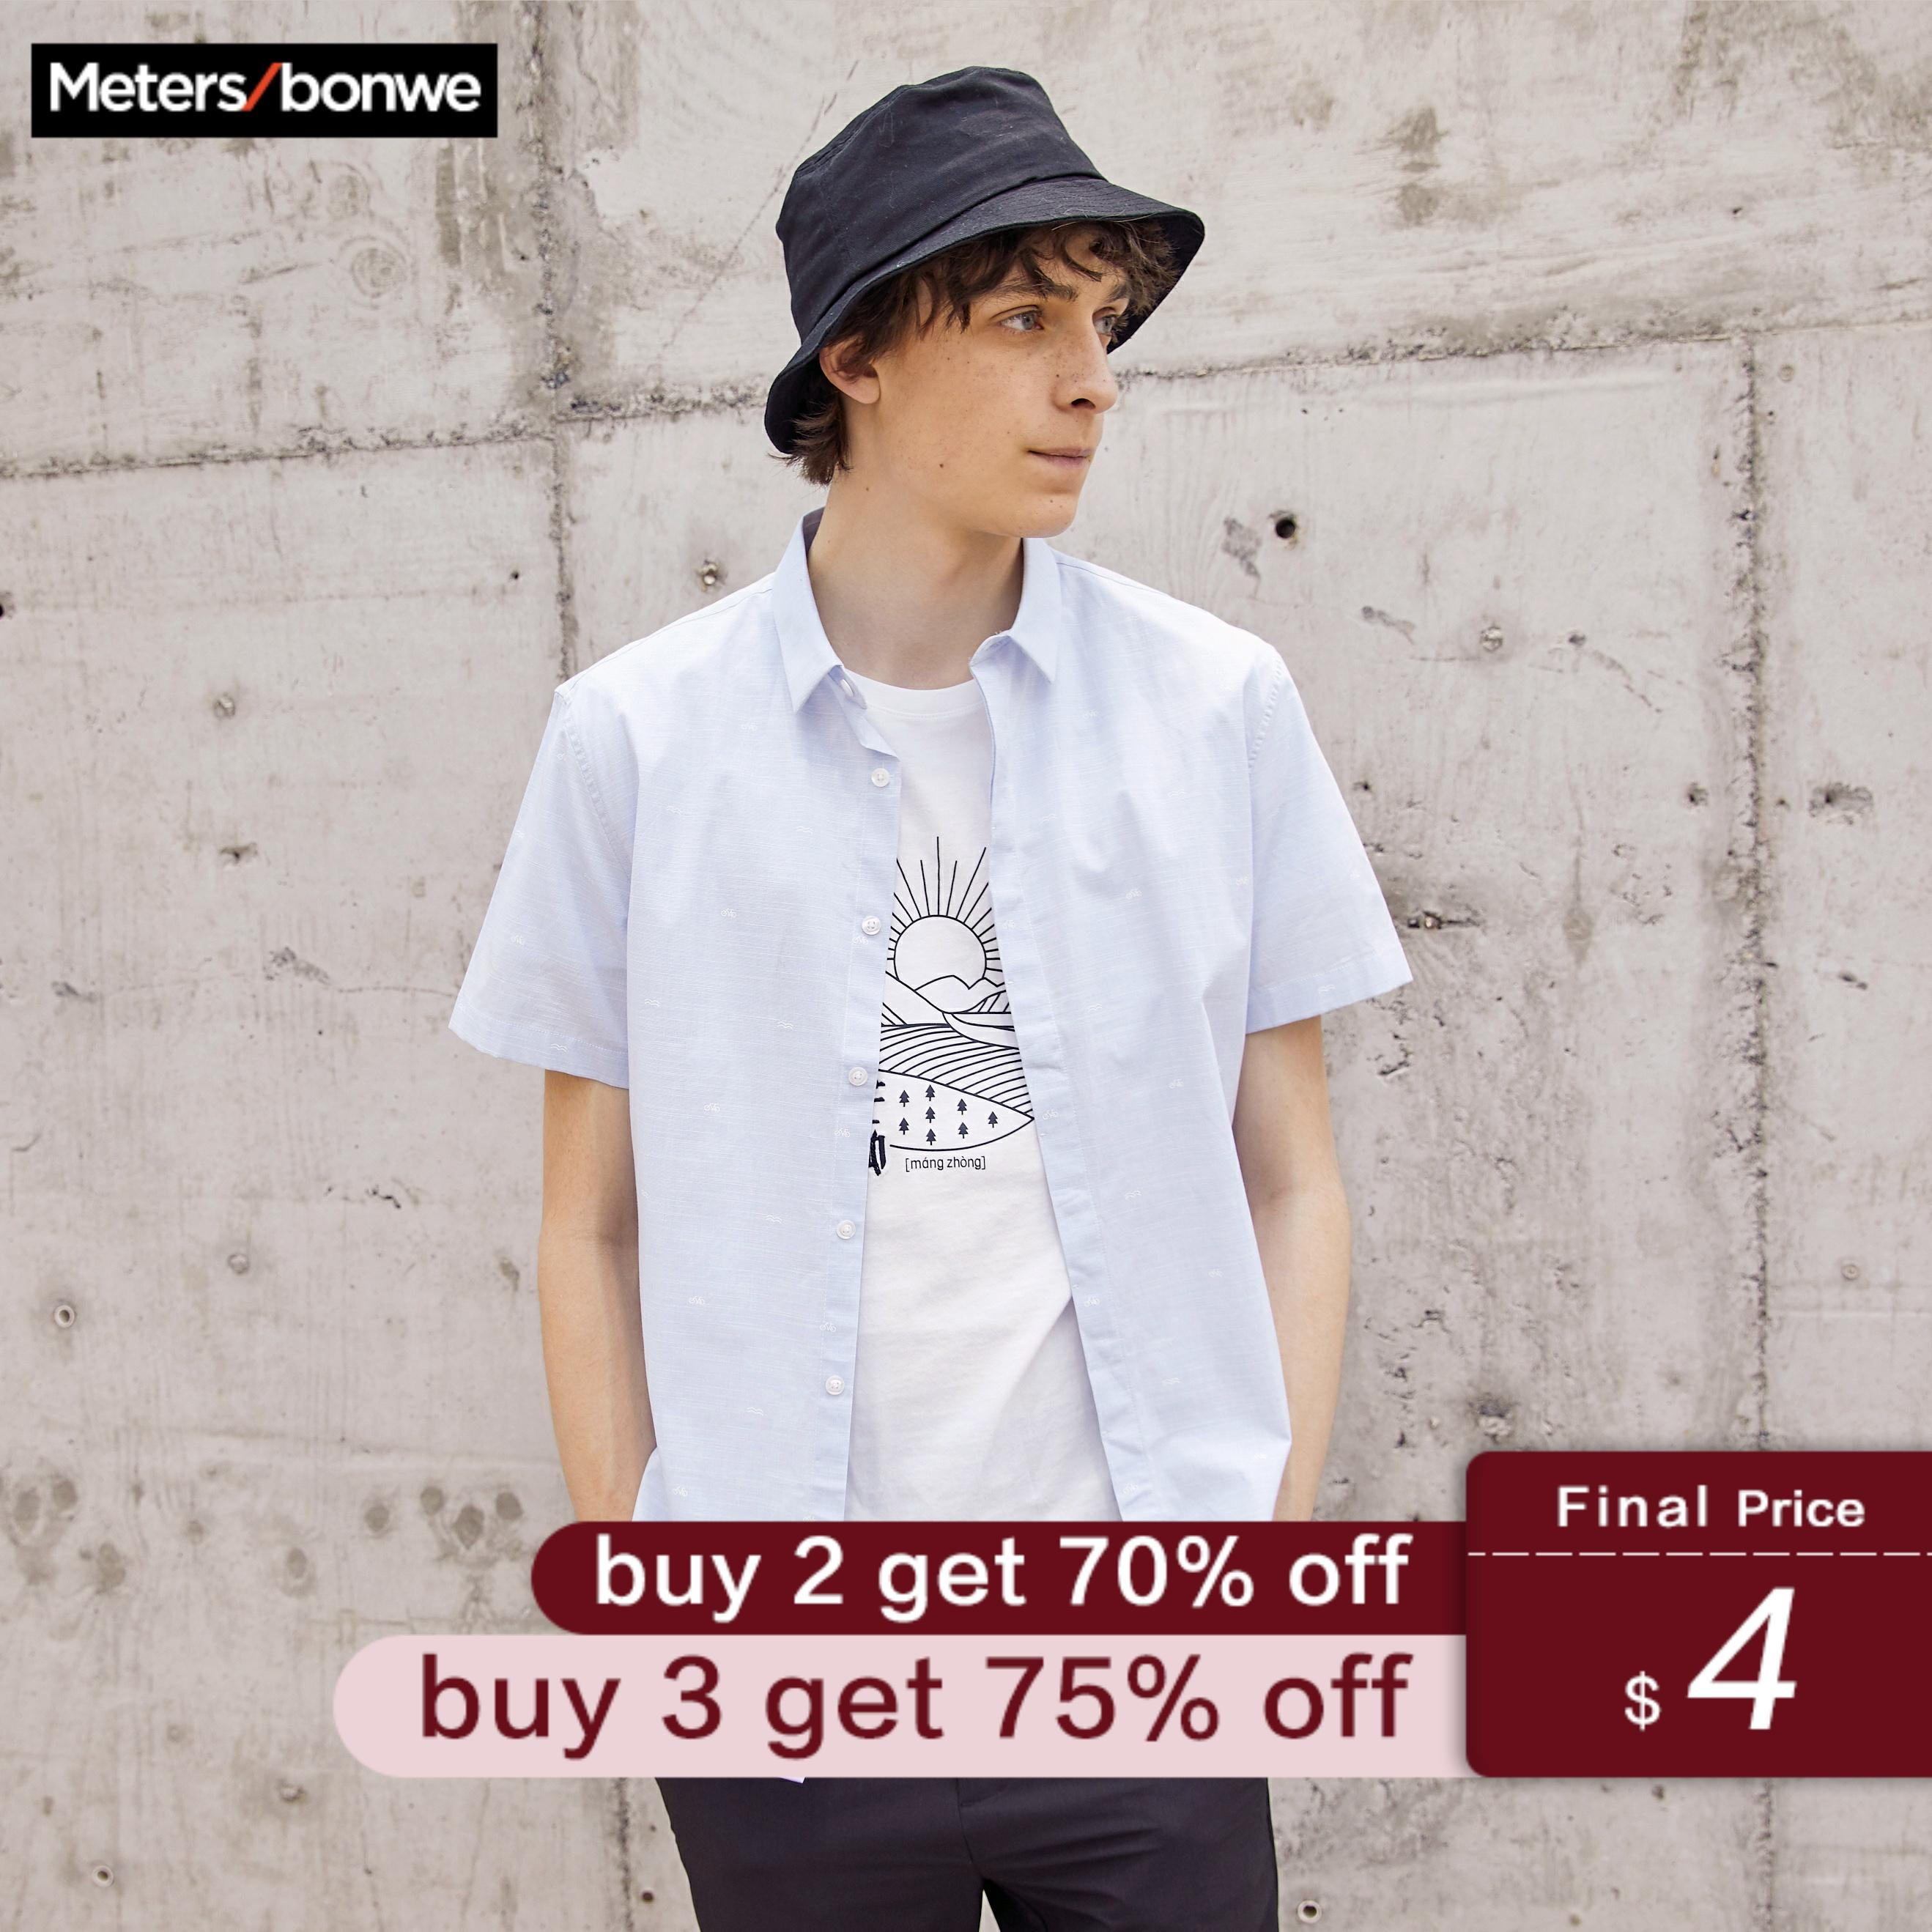 Metersbonwe Men Short Sleeve Shirt Cotton 100% For Male 2019 New Trend Summer Solid Color Shirt Casual Shirt рубашка мужская